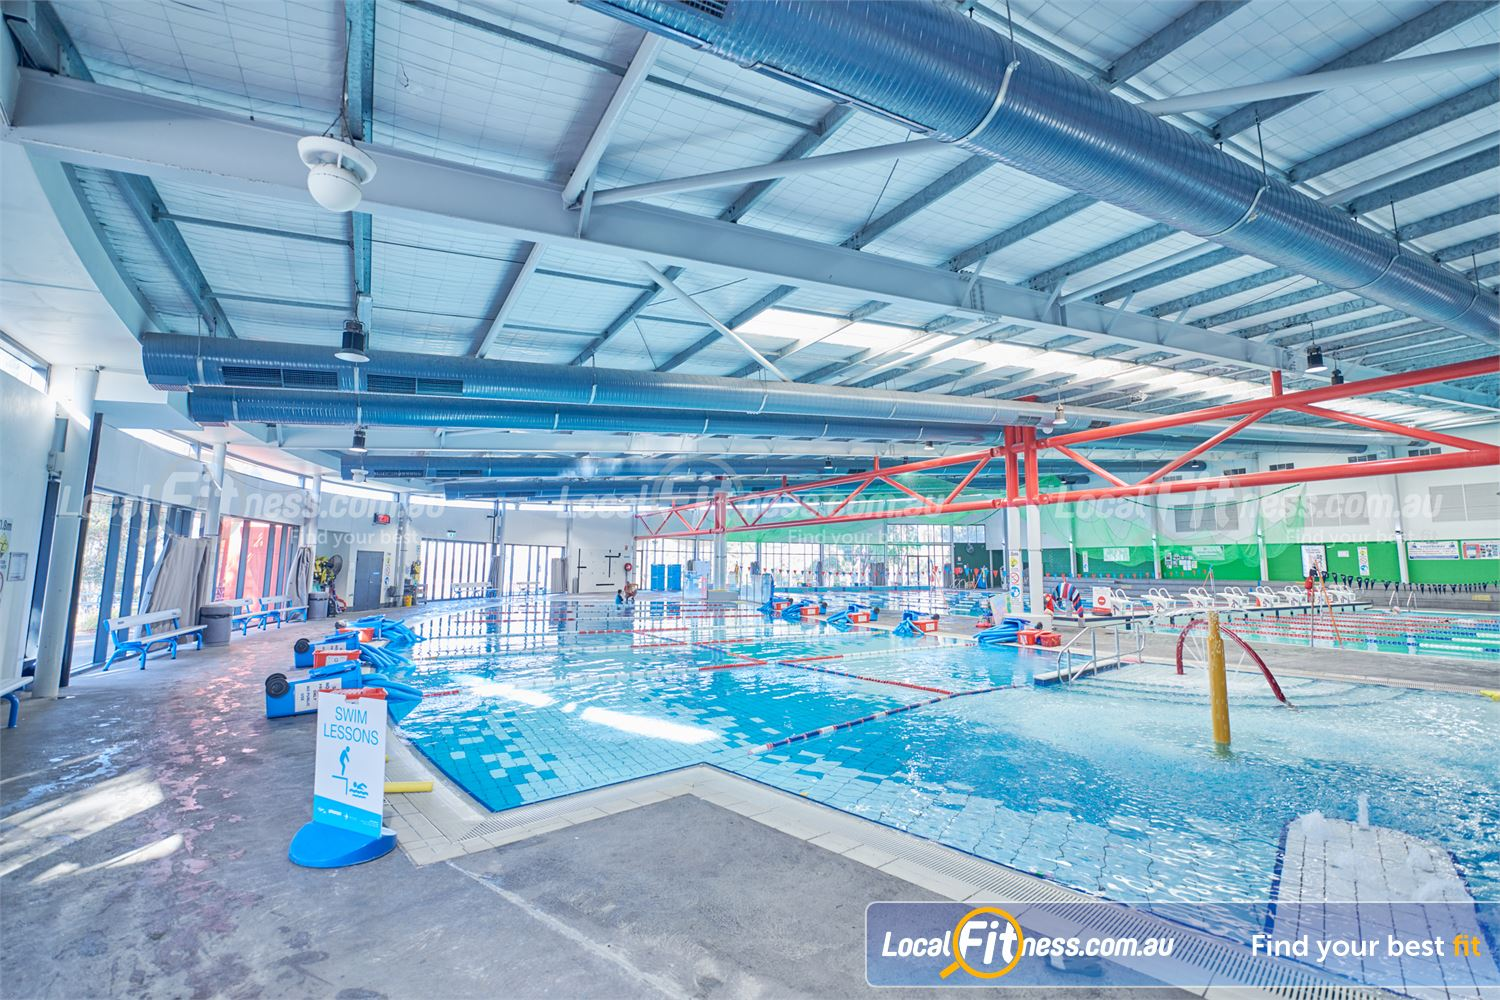 Maribyrnong Aquatic Centre Maribyrnong Our swim school programs are run in our dedicated Maribyrnong learn to swim pool.